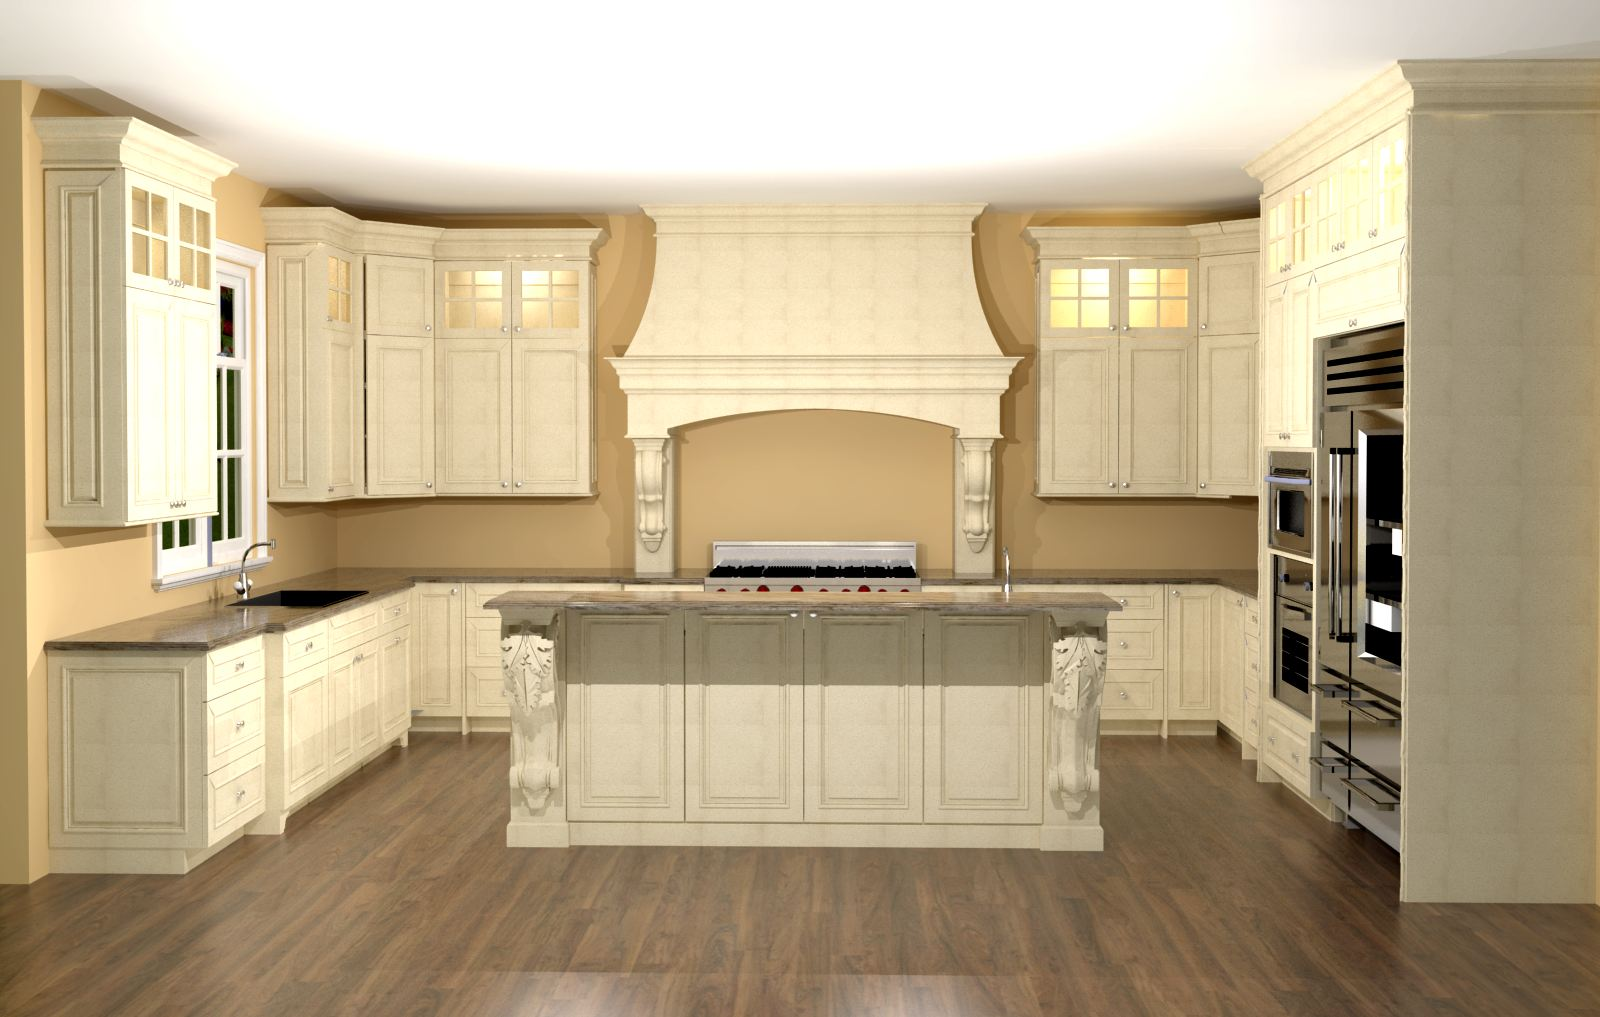 Large Kitchen With Custom Hood Features Large Enkeboll Corbels On Island Nick Miller Design